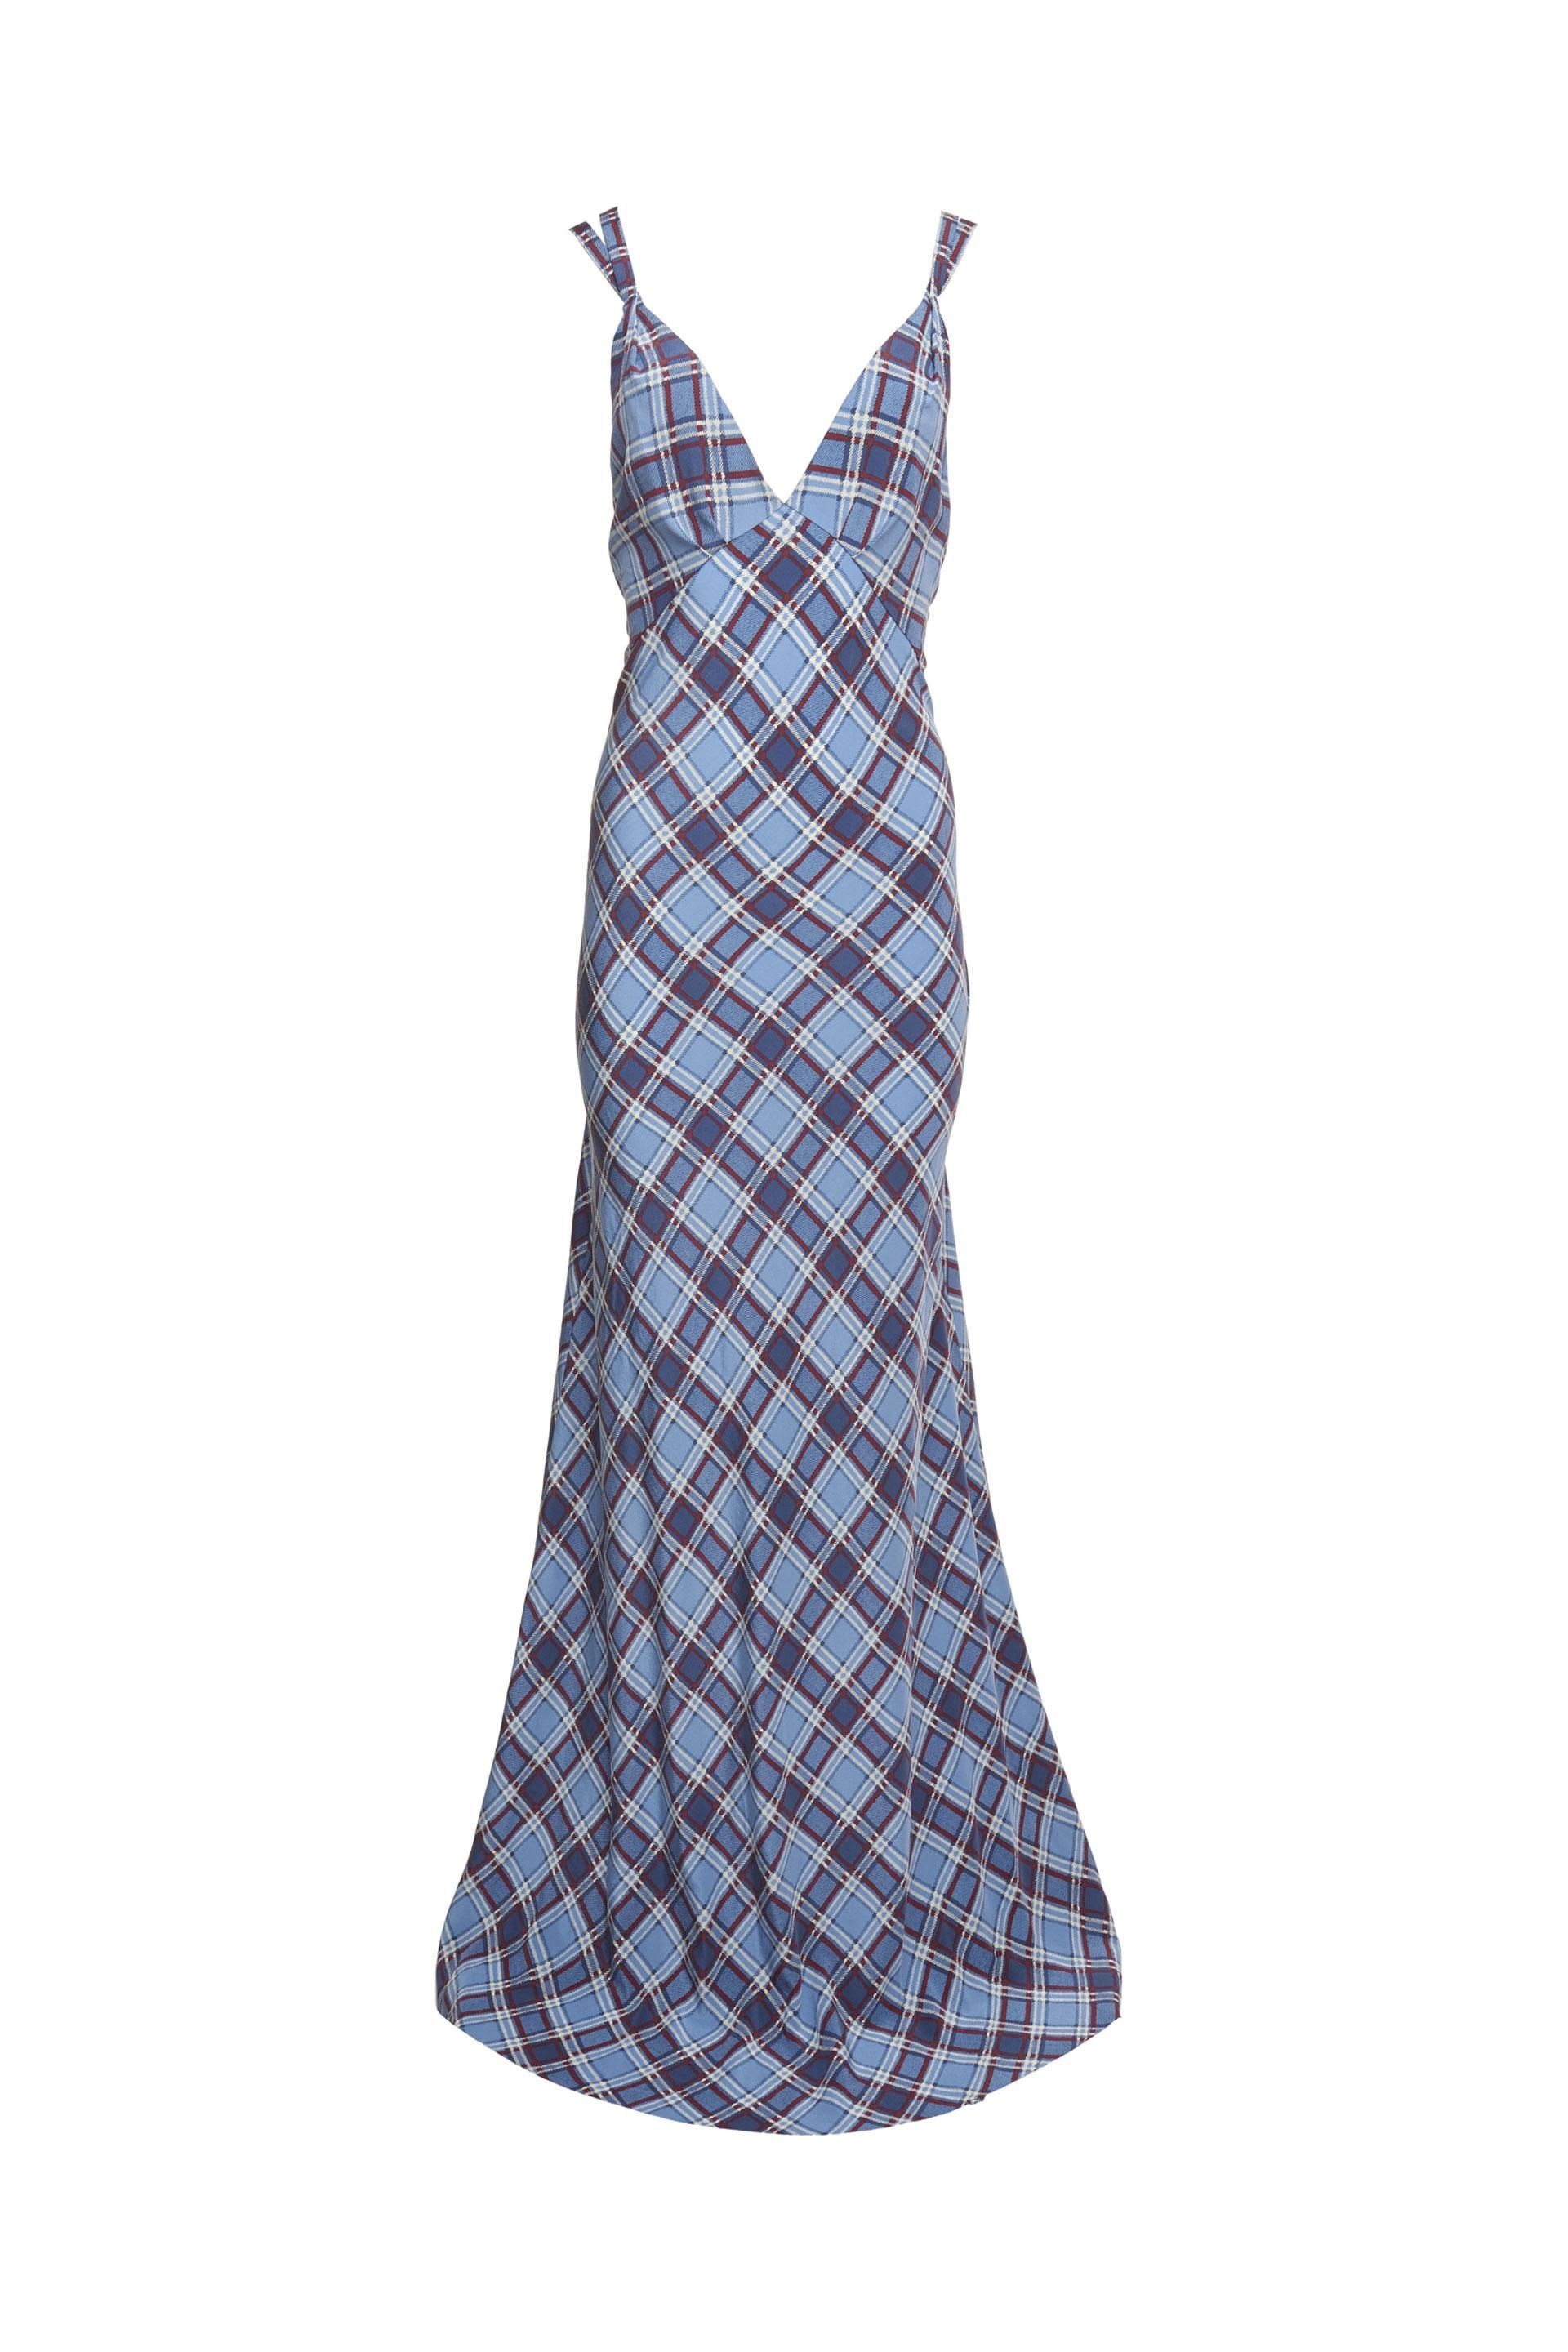 sleeveless checked dress - Blue Marc Jacobs For Sale 2018 NDzLEzr0F